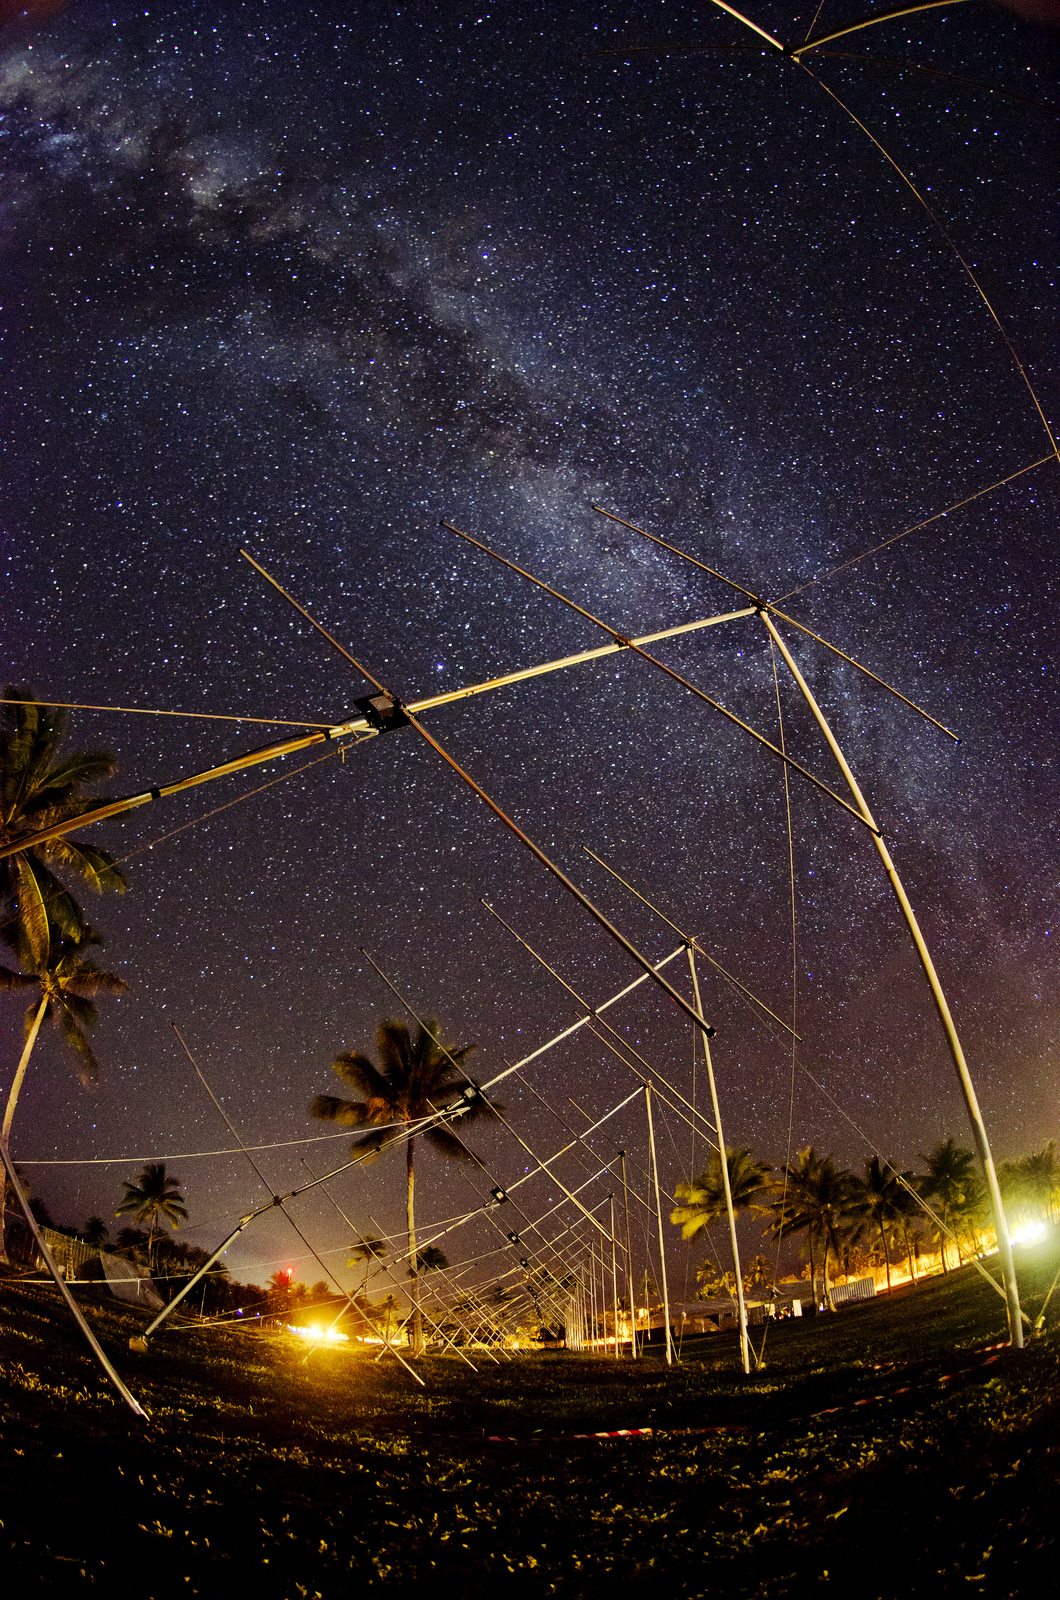 Milky Way & the Antenna